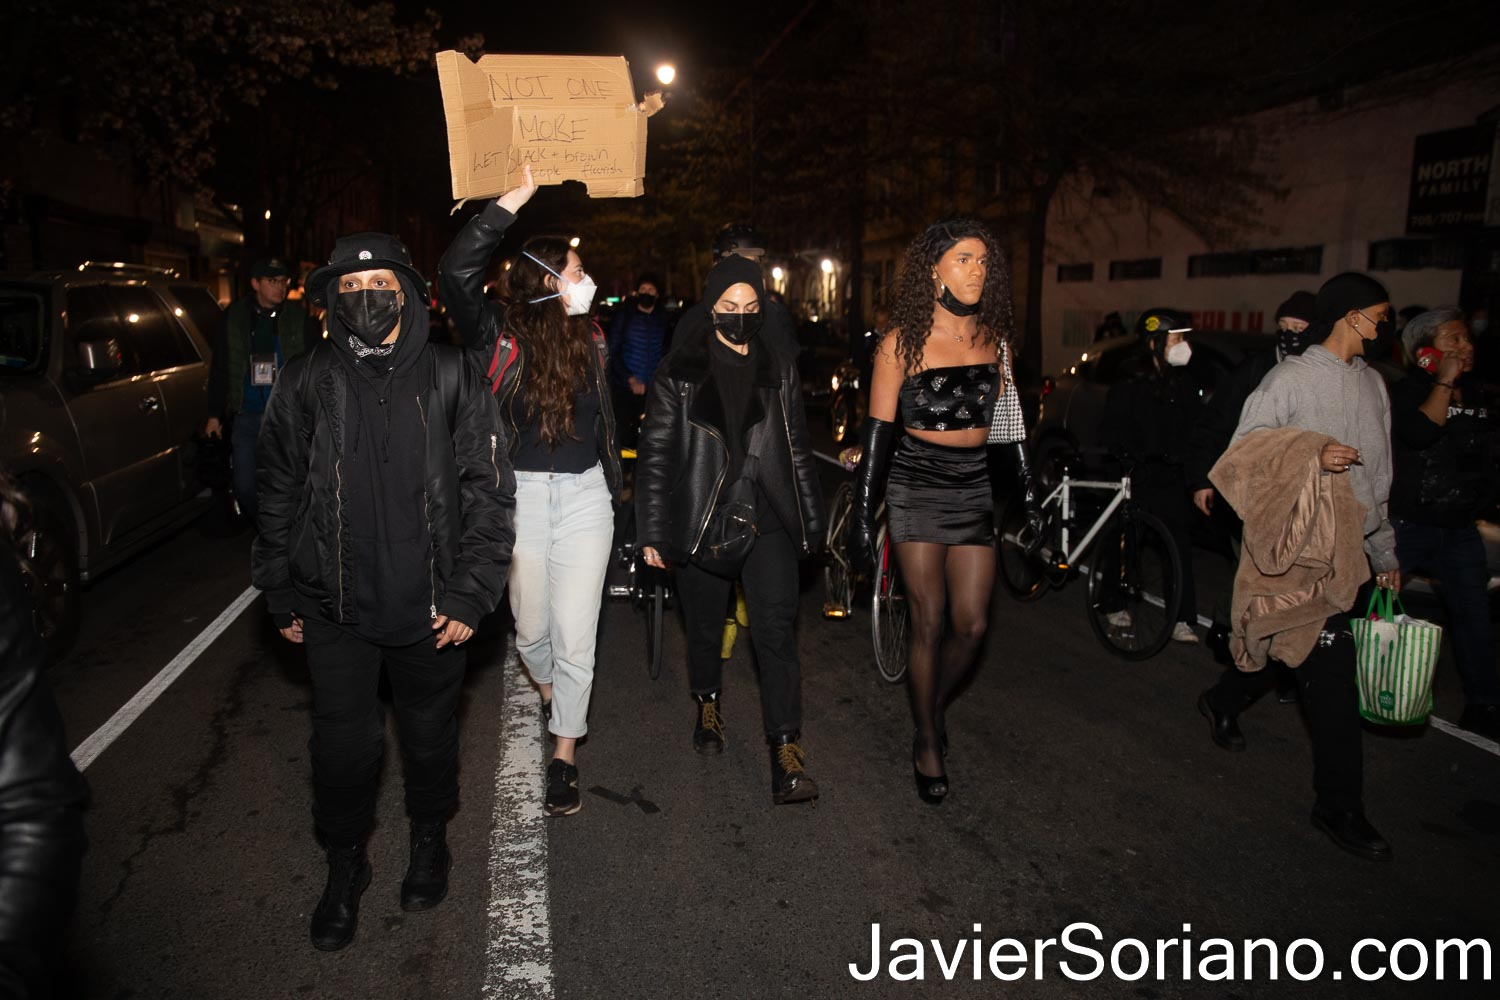 Friday, April 16, 2021. Brooklyn, New York City - The group Mexicanos Unidos and other activists gathered at Barclays Center in Brooklyn to demand justice for Adam Toledo. After the rally, peaceful protesters marched through different streets in Brooklyn. One of the demonstrators was Trans activist Joel Rivera.  On Monday, March 29, 2021, Chicago police officer, Eric Stillman murdered Adam Toledo. Adam was a 13 years-old Latino boy.   Photo by Javier Soriano/www.JavierSoriano.com